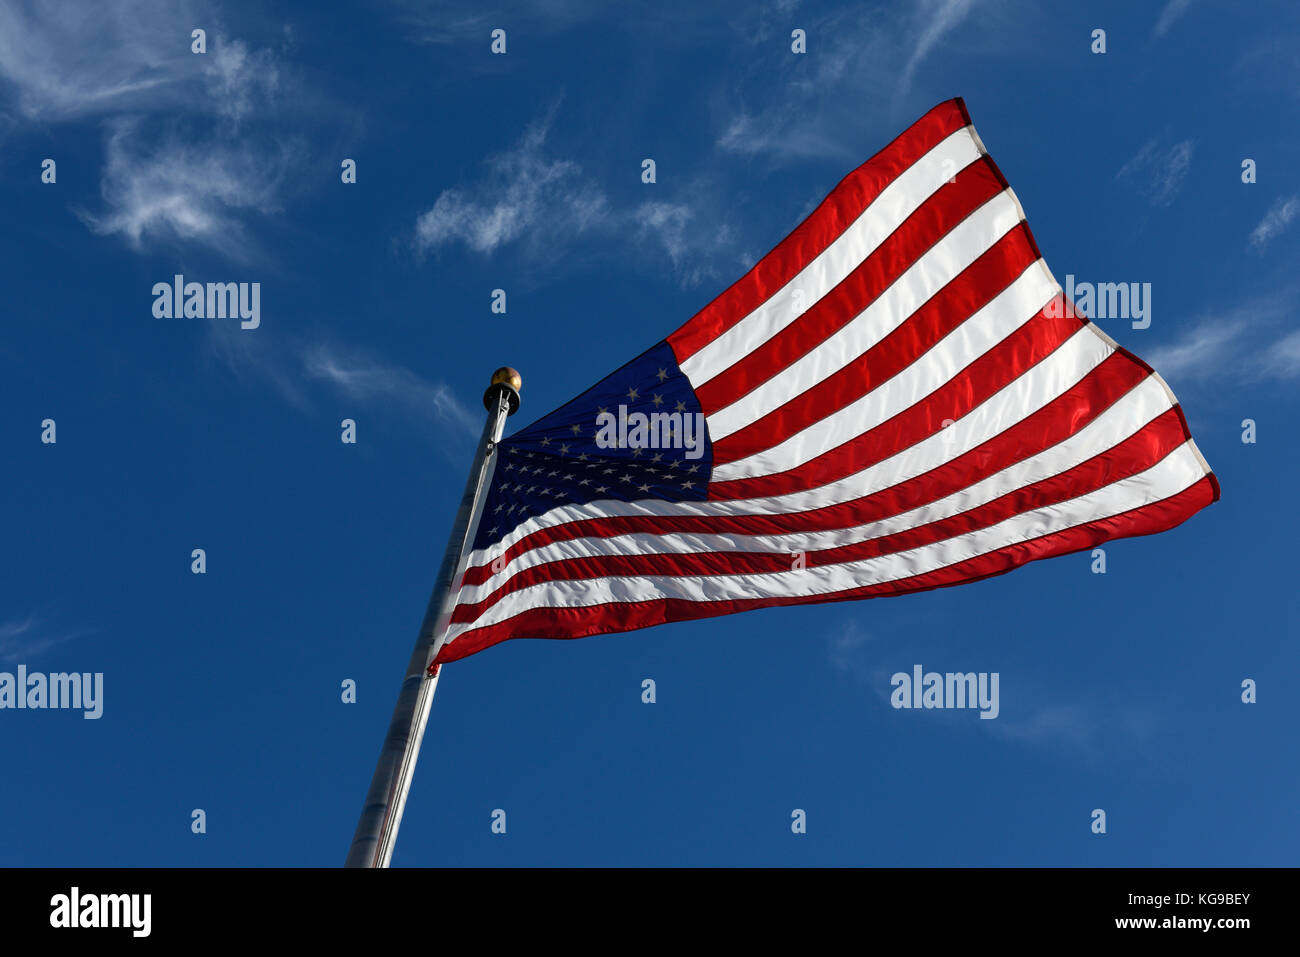 The American Flag Flying, Stars and Stripes,  United states of America Flag Blue sky. The Star-Spangled Banner USA - Stock Image